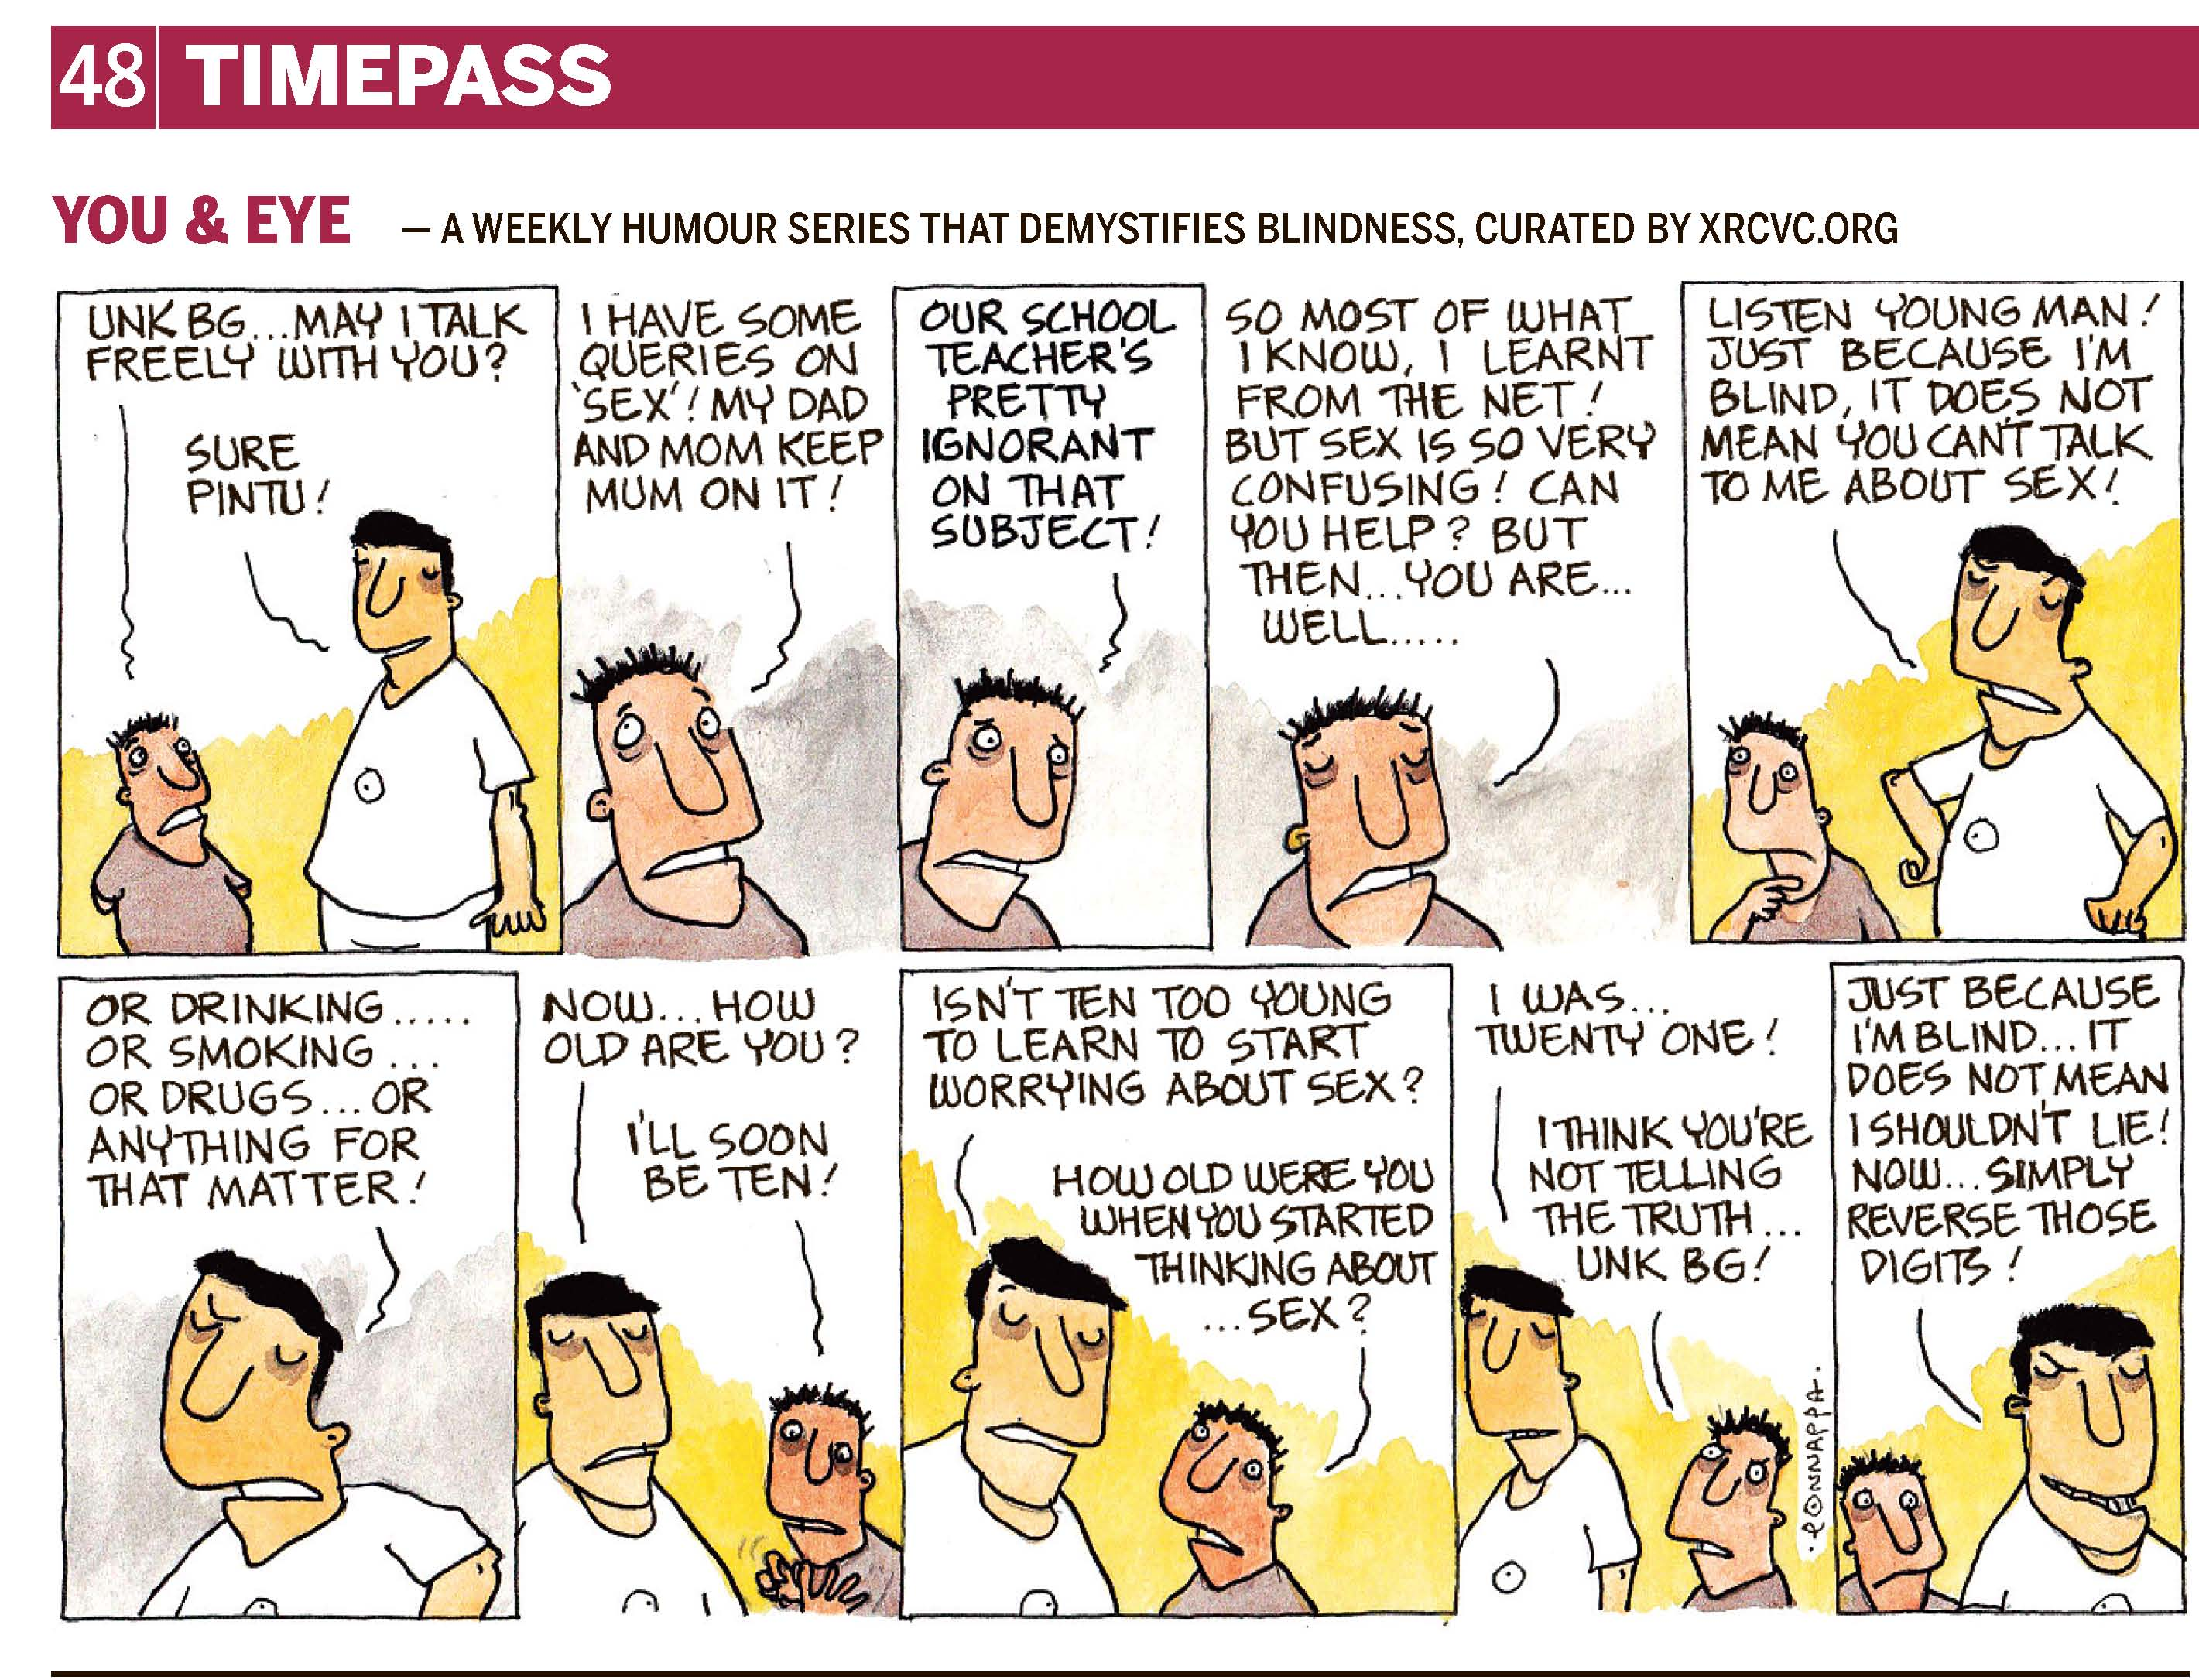 Page 48 | TIMEPASS YOU & EYE – A WEEKLY HUMOUR SERIES THAT DEMYSTIFIES BLINDNESS, CURATED BY XRCVC.ORG Image description: A cartoon strip with 10 frames… Frame 1: (A sighted boy – BG's nephew, Pintu, standing with his hands behind his back – speaking to BG) Pintu: Unk BG… may I talk freely with you? BG: Sure Pintu! Frame 2: (A close-up of Pintu who appears unsure while he looks towards the top-right, representing him thinking) Pintu: I have some queries on 'sex'! My dad and mom keep mum on it! Frame 3: (A close-up of Pintu seemingly dispirited as he looks downwards with eyebrows slightly raised) Pintu: Our school teacher's pretty ignorant on that subject! Frame 4: (A close-up of Pintu with eyes closed seemingly unenthusiastic) Pintu: So most of what I know, I learnt from the net! But sex is so very confusing! Can you help? But then… you are… well… Frame 5: (BG resting his hands on his hips in a manner to rebuke Pintu, while Pintu looks sorry as he places his right hand on his chin to think) BG: Listen young man! Just because I'm blind, it does not mean you can't talk to me about sex! Frame 6: (A close-up of BG slightly annoyed) BG: Or drinking… or smoking… or drugs… or anything for that matter! Frame 7: (BG speaking to Pintu who has his fingers spread out in front of him) BG: Now… how old are you? Pintu: I'll soon be ten! Frame 8: (BG speaks to Pintu who seems inquisitive) BG: Isn't ten too young to learn to start worrying about sex? Pintu: